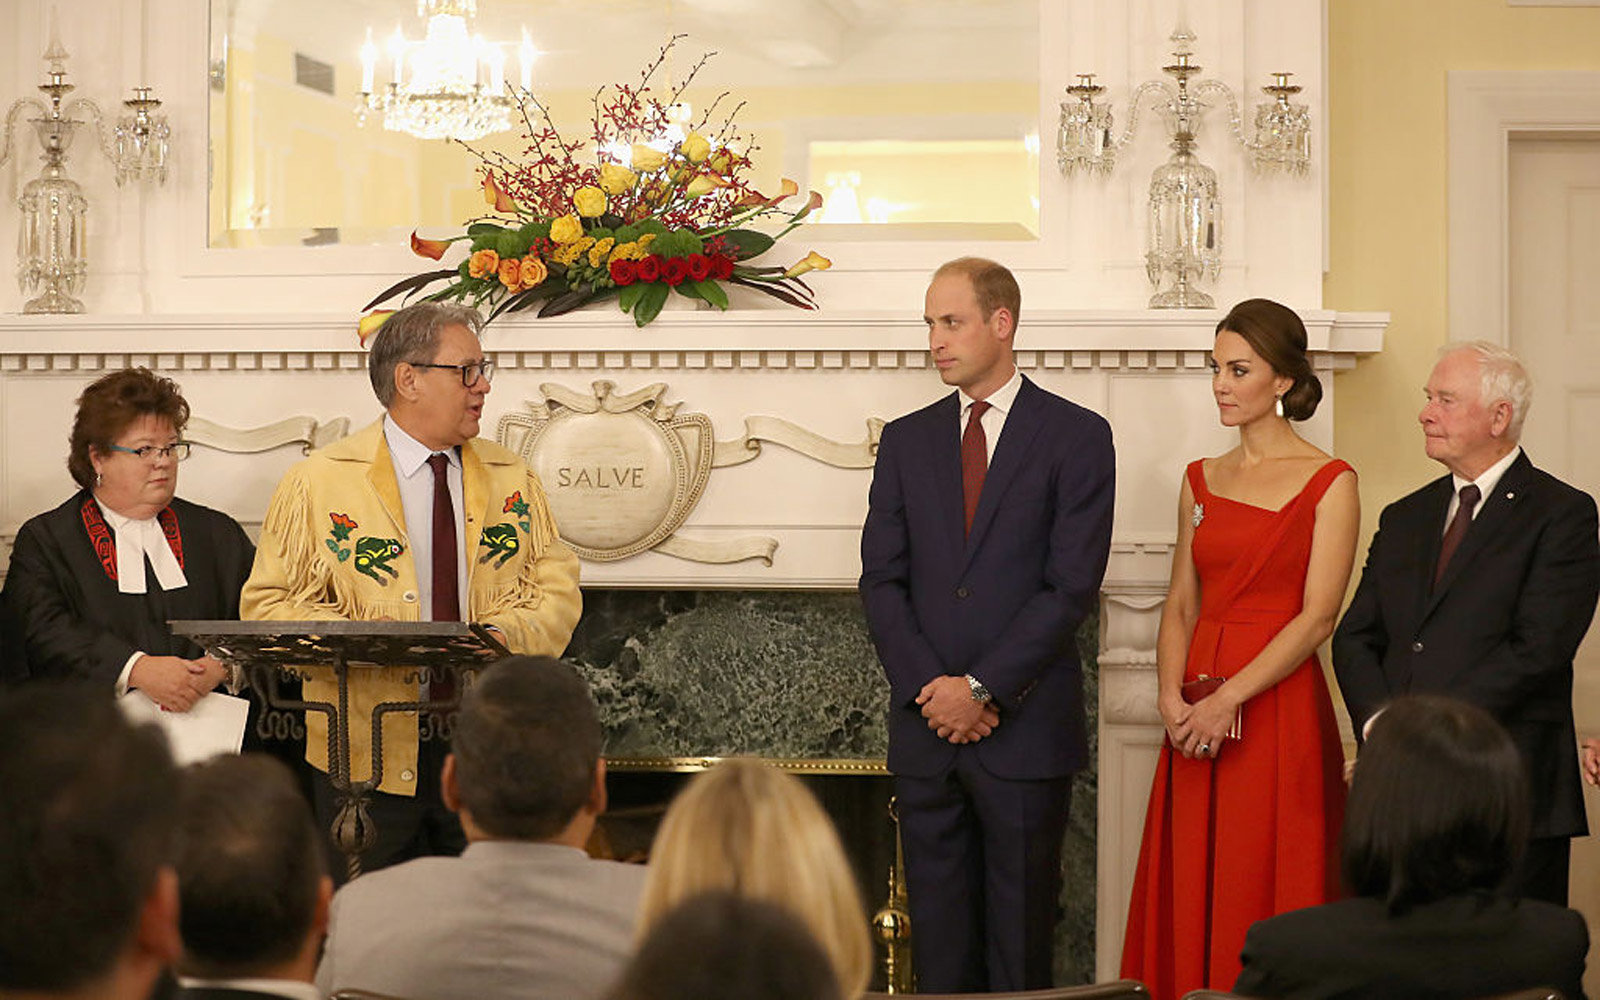 VICTORIA, BC - SEPTEMBER 26:  Catherine, Duchess of Cambridge and Prince William, Duke of Cambridge attend a reception at Government House on Day 3 of a Royal Tour of Canada on September 27, 2016 in Victoria, Canada. Prince William, Duke of Cambridge, Cat